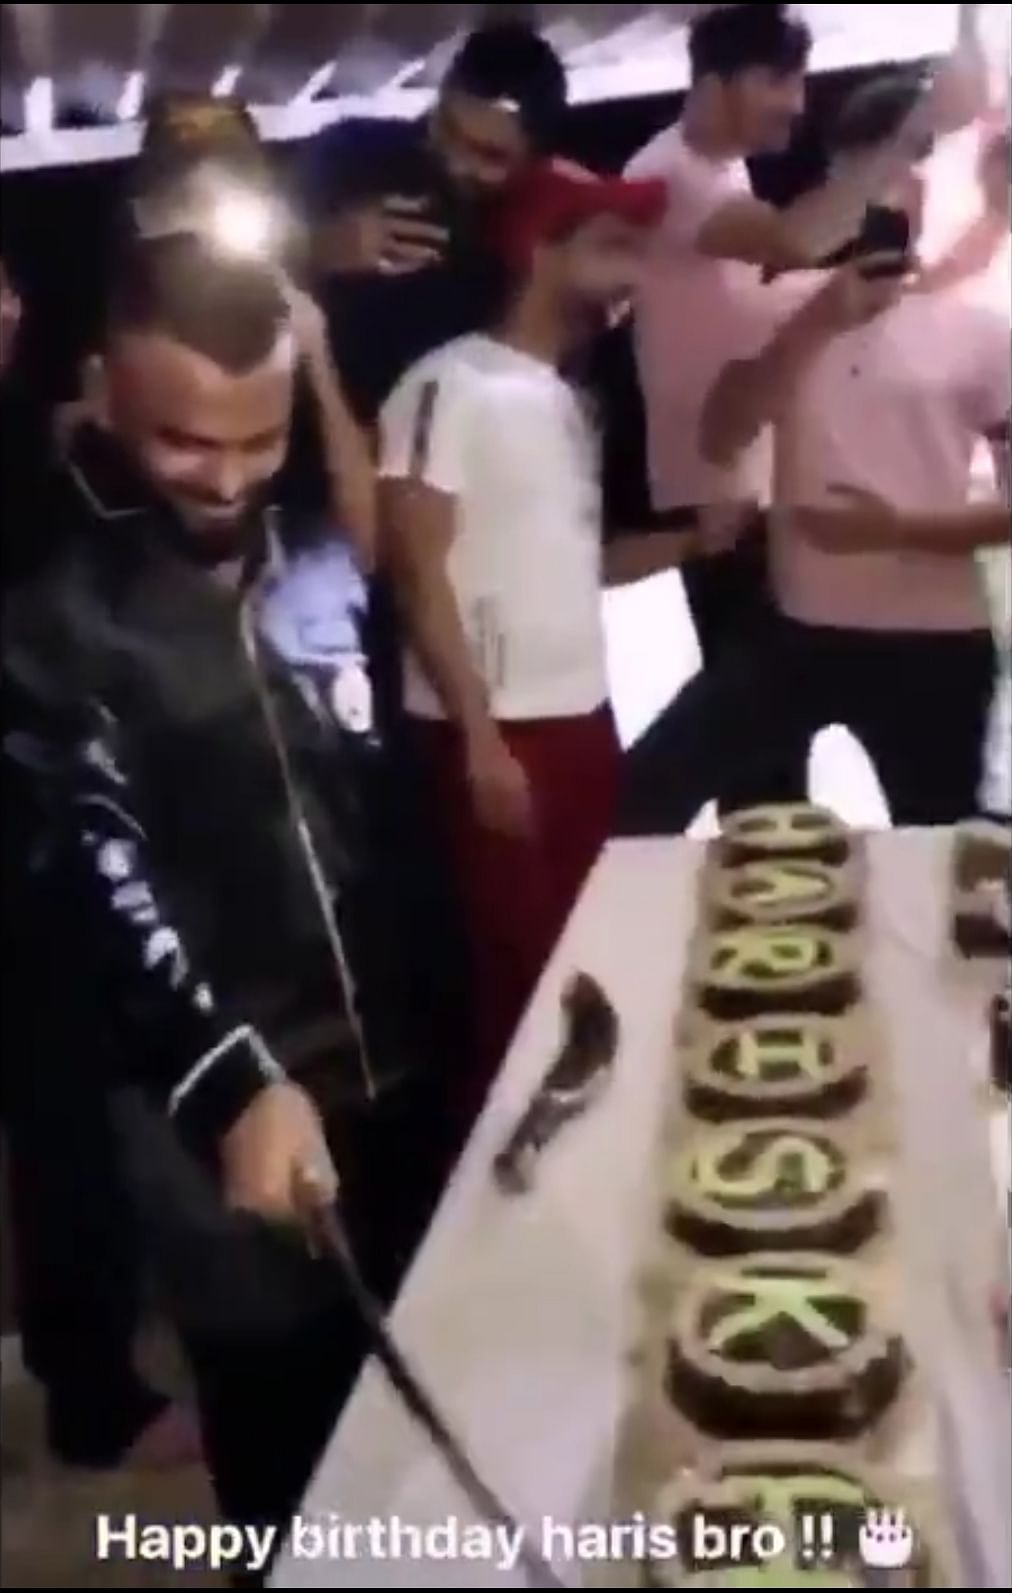 How to celebrate birthday in times of COVID-19 outbreak: A sword, 25 cakes and cops